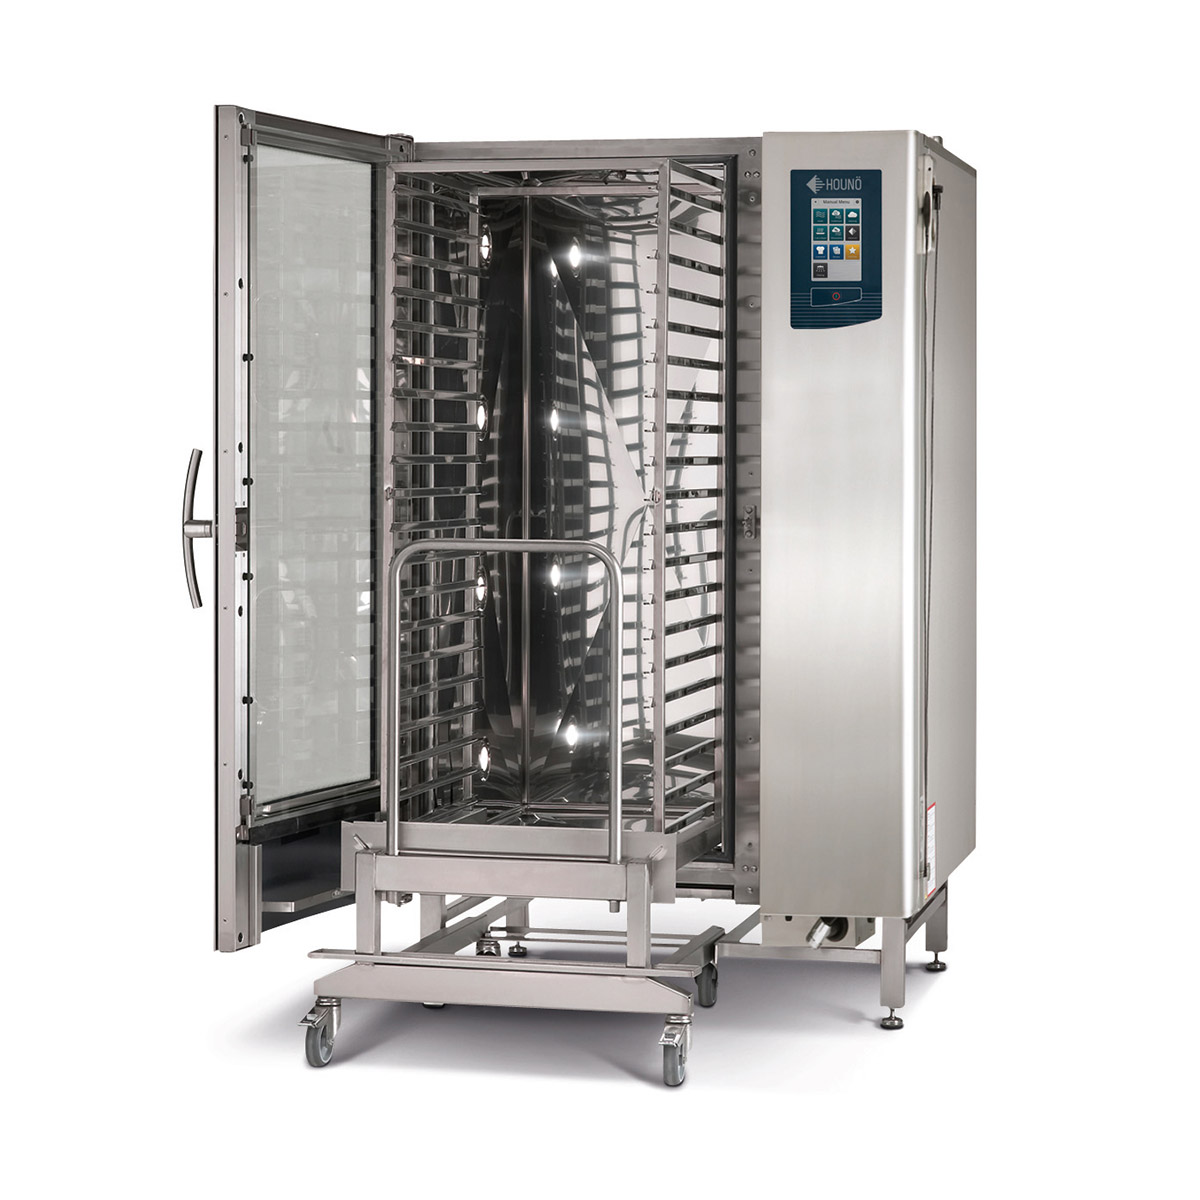 Hounö K & KPE 2.20 Roll-In Combi Oven Electric 20 Tray Oven – 4 Year Warranty